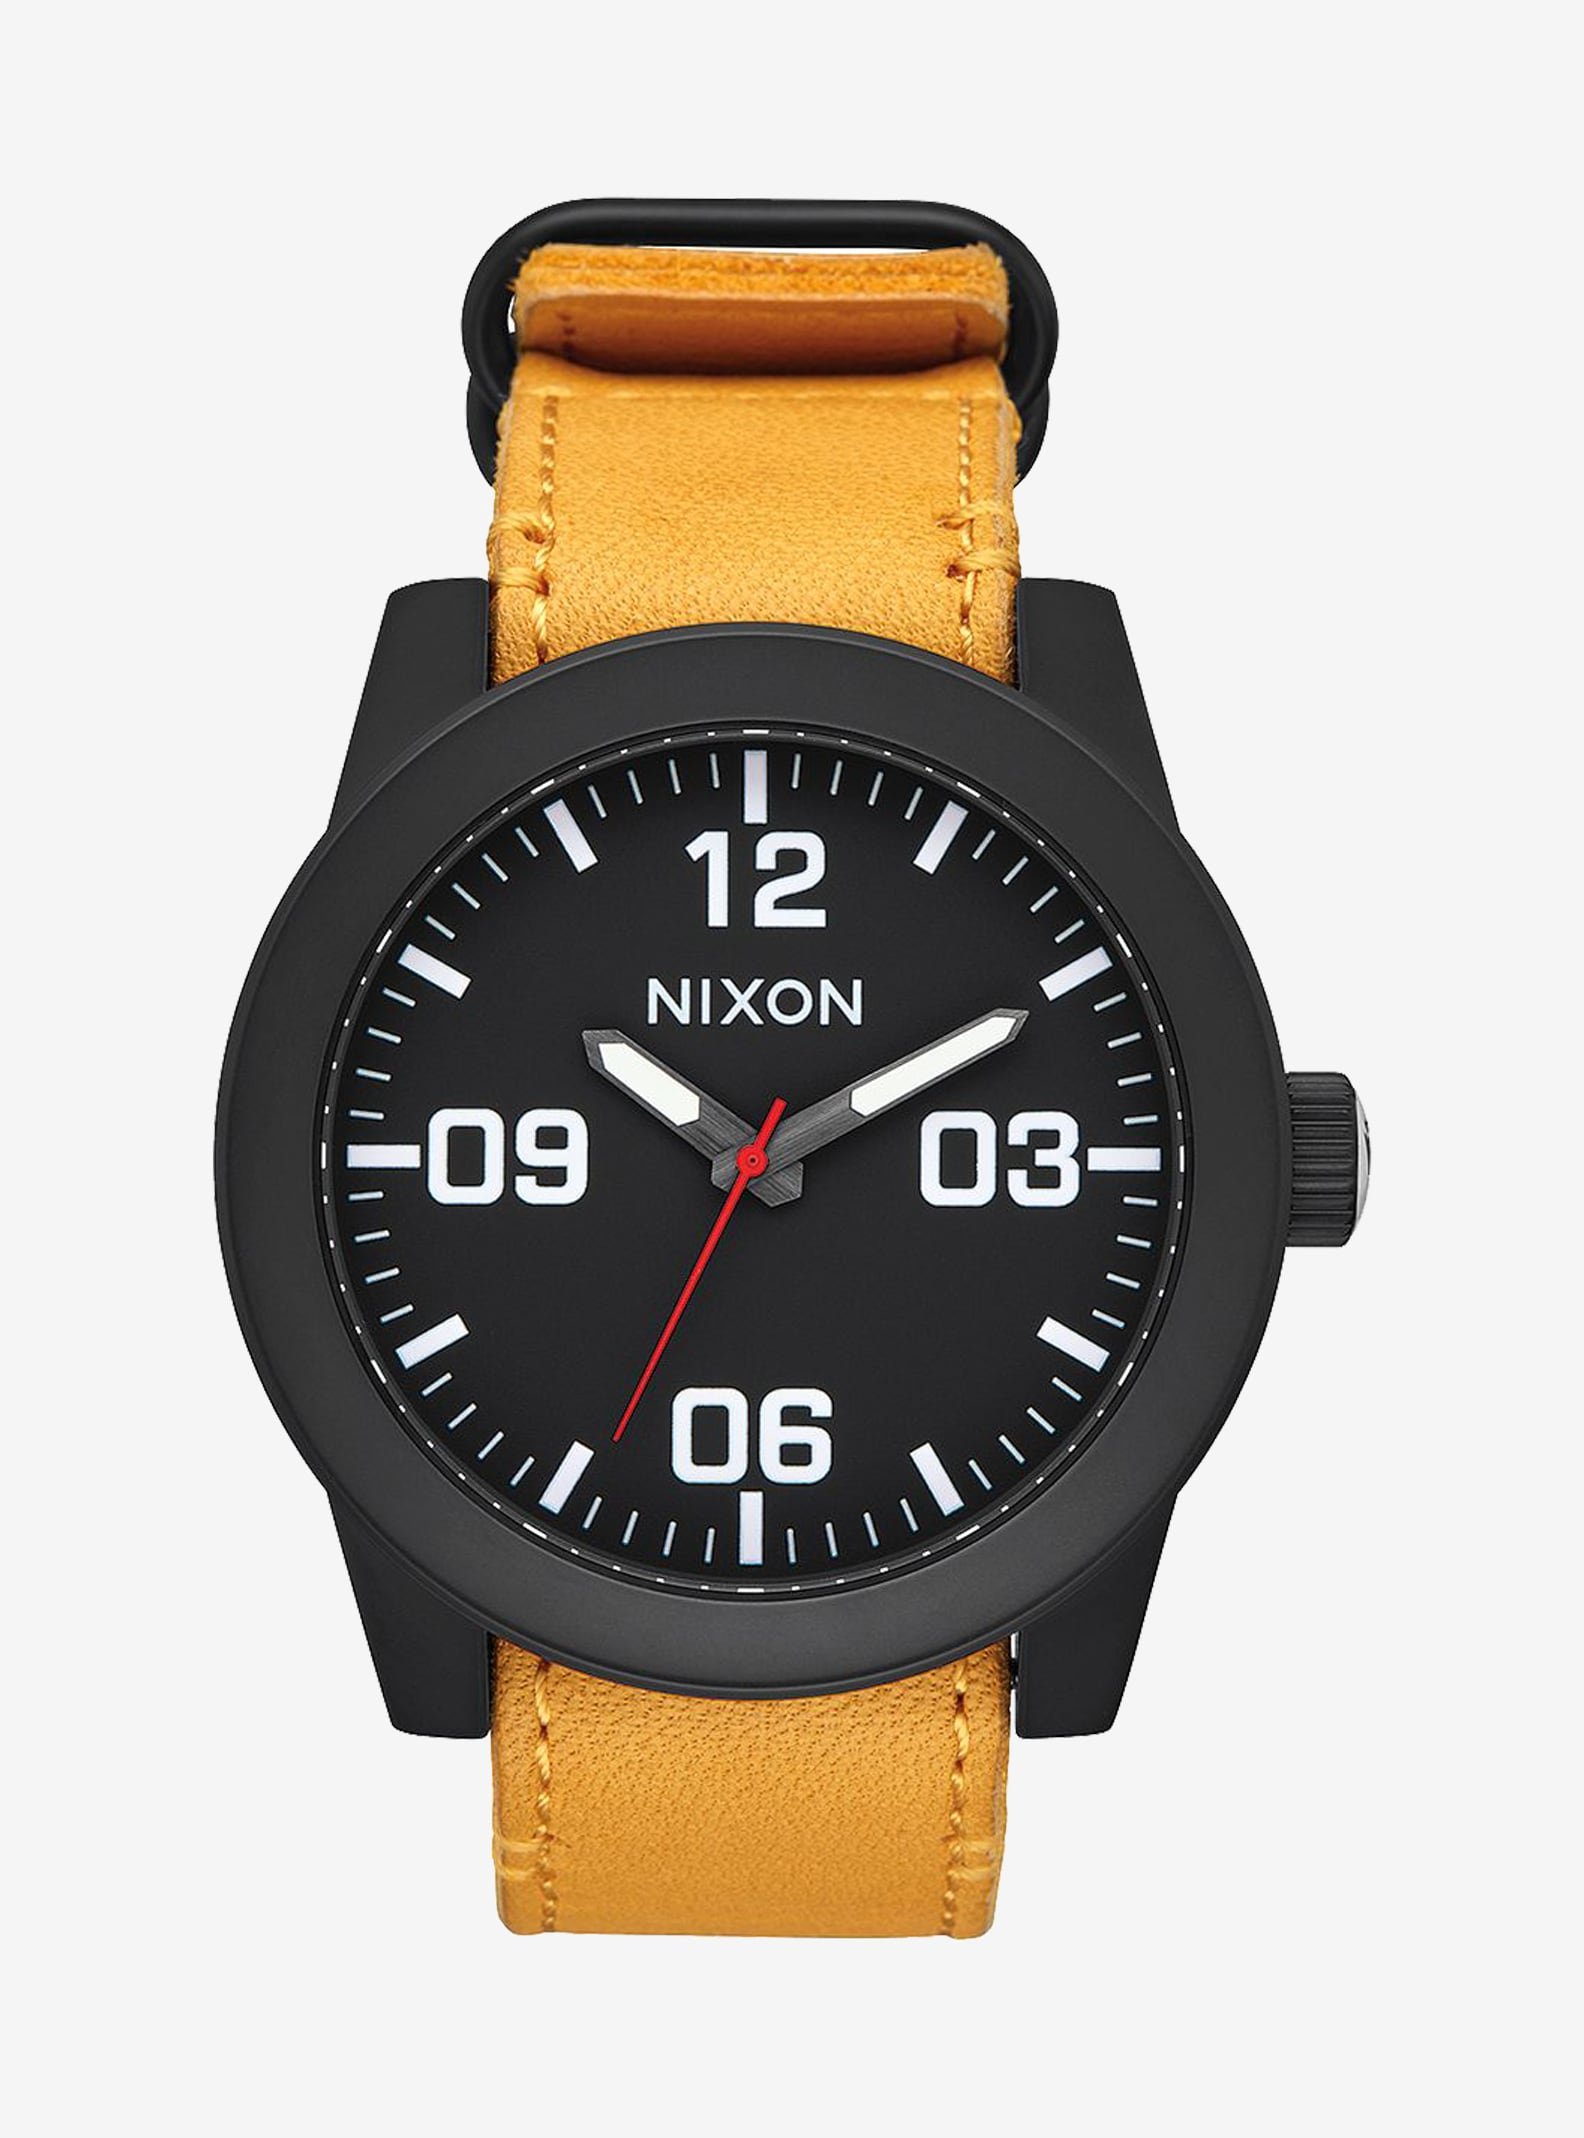 Nixon Corporal Watch shown in Black / Goldenrod